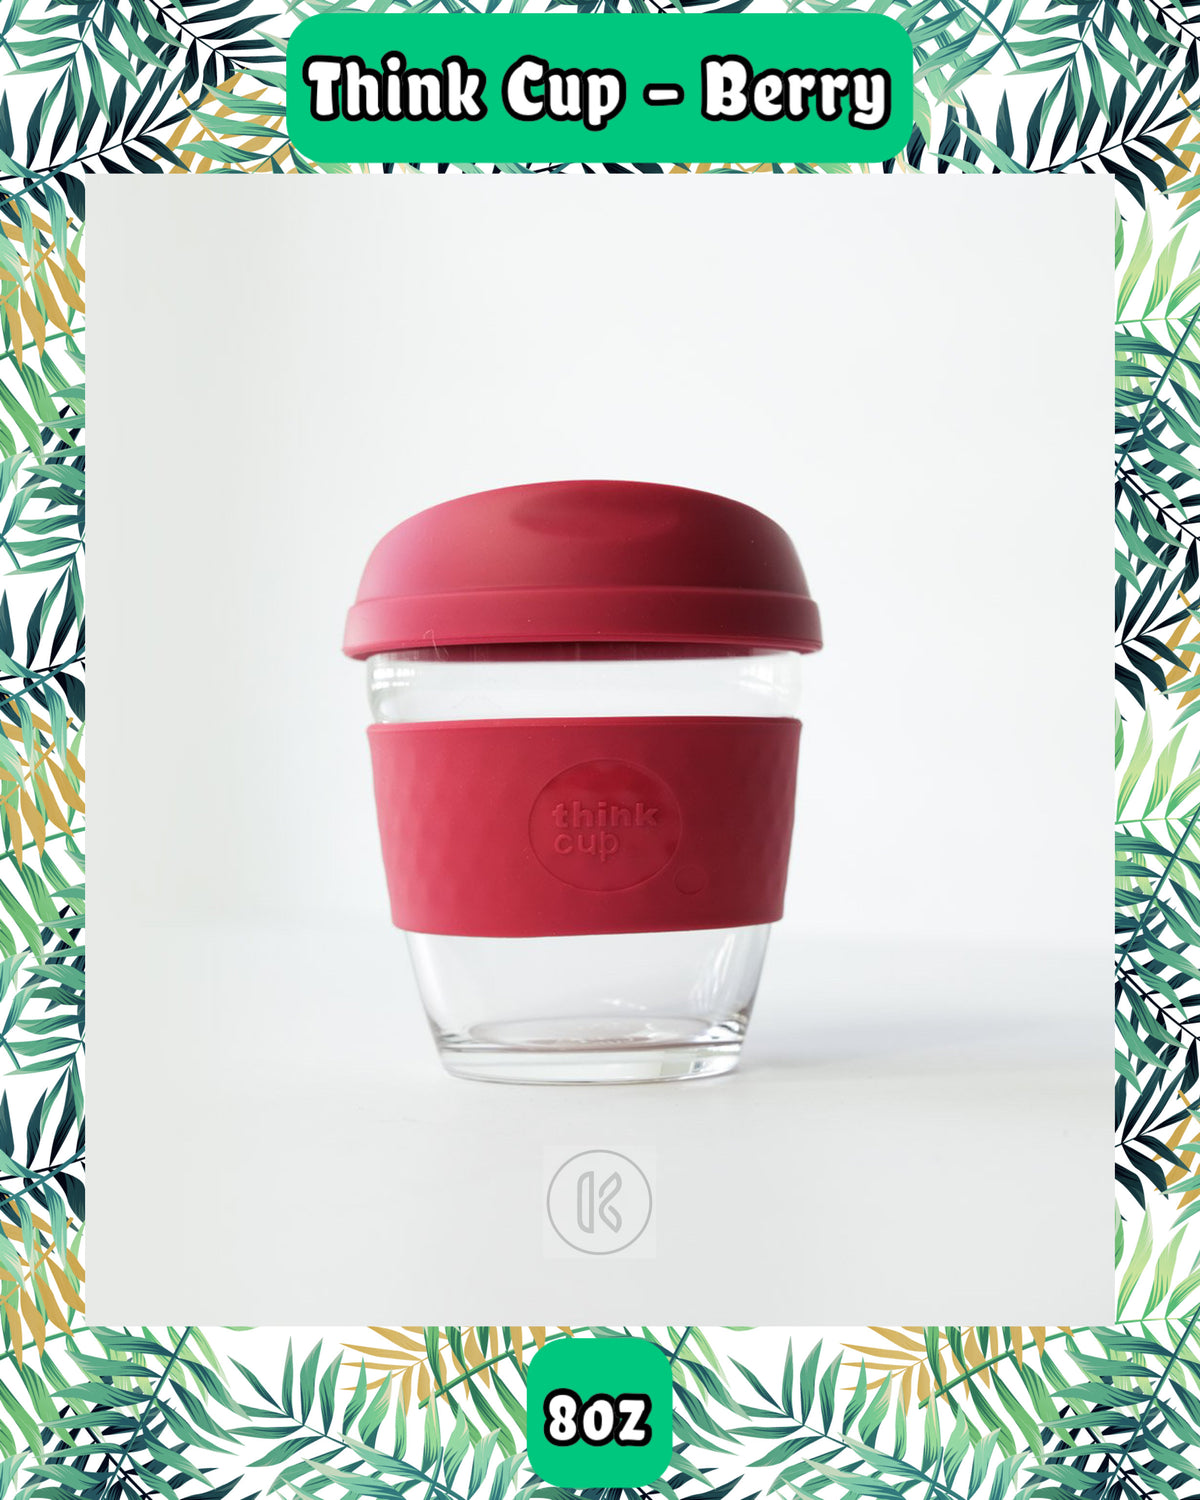 Think Cup Reusable Glass Coffee Cup - 8oz Berry - Kind Living Store